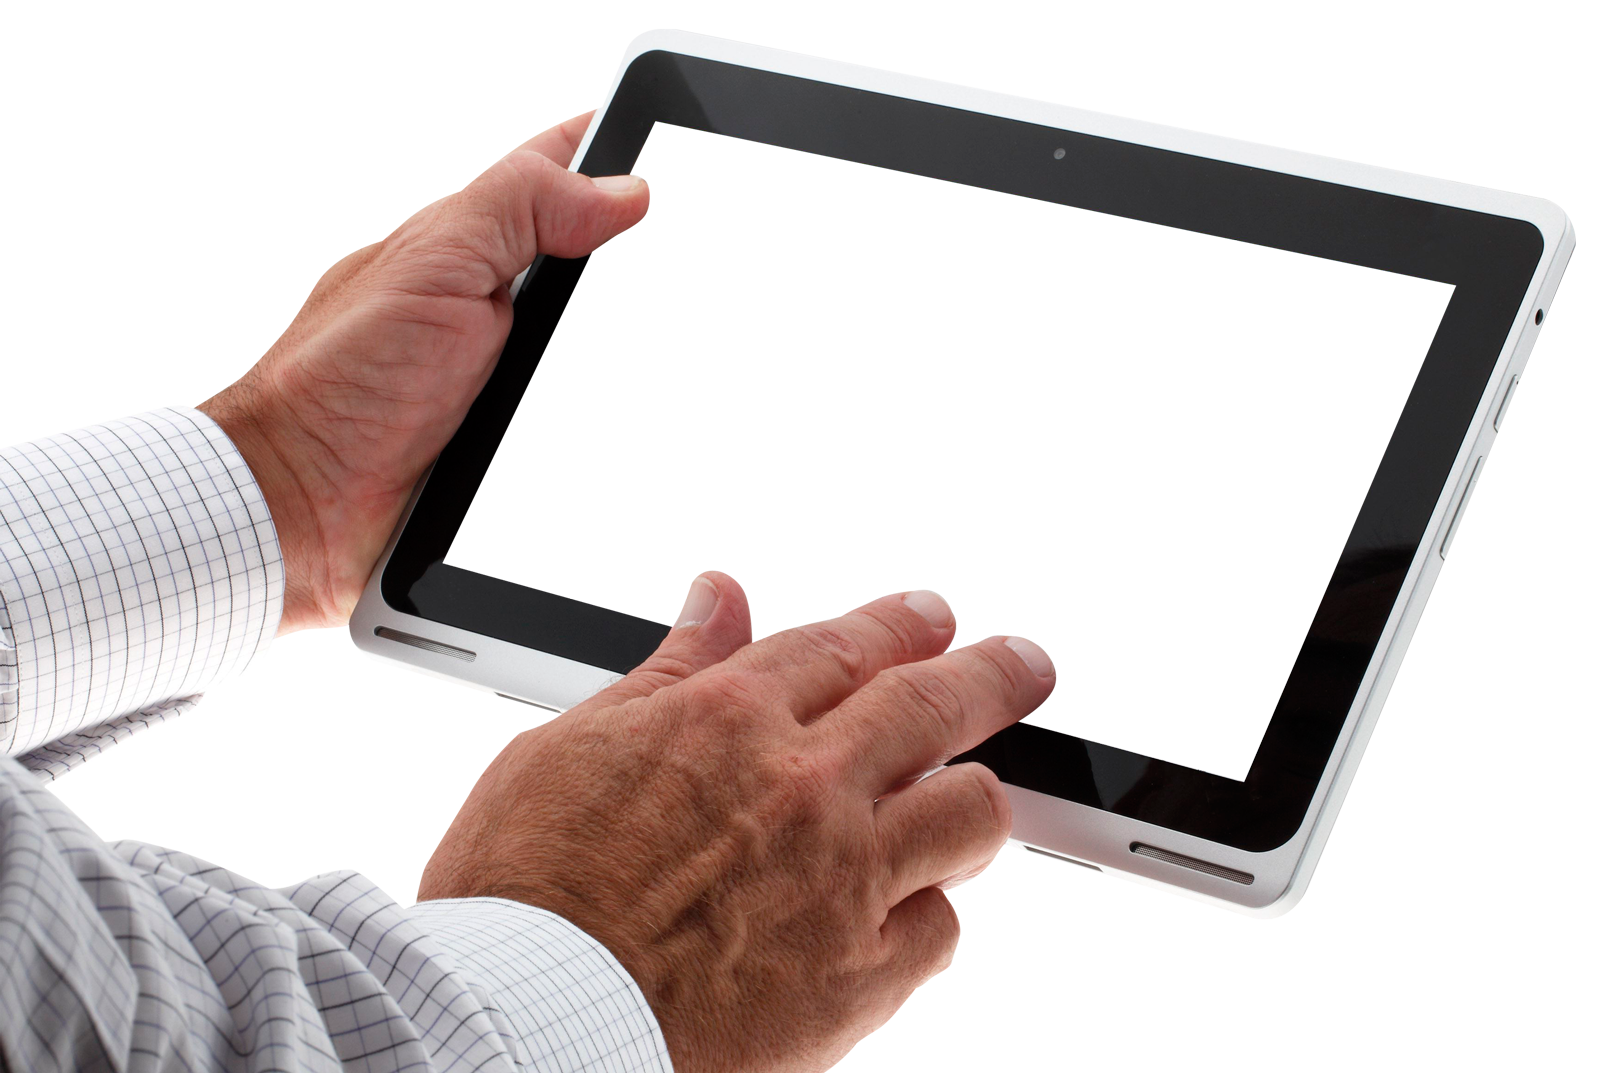 Hand Using Tablet Png Image Tablet Hand Water Pump Graphics Tablet